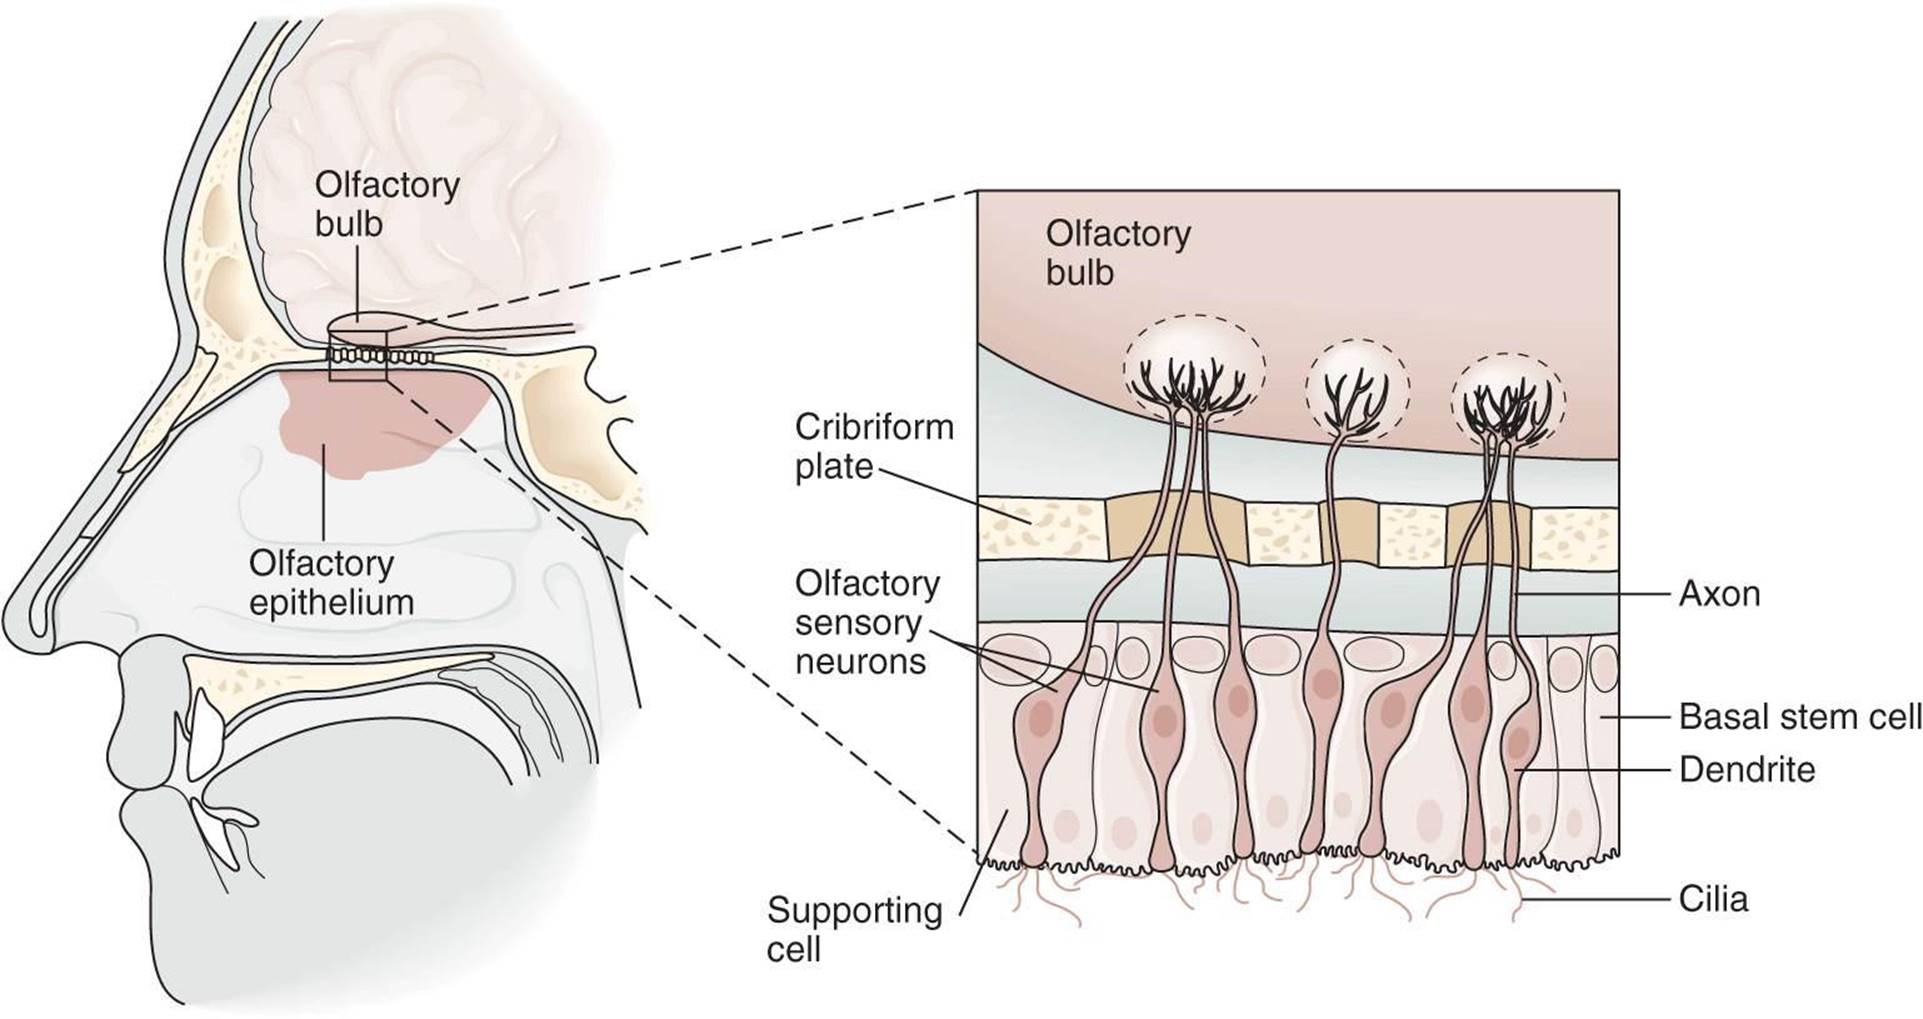 action potential and receptor olfactory receptor 2 essay Action potential to the olfactory bulb in the brain, allow the animalto identifythecompoundandrespondto its tocreate an olfactory receptor-specific probe, degenerate.